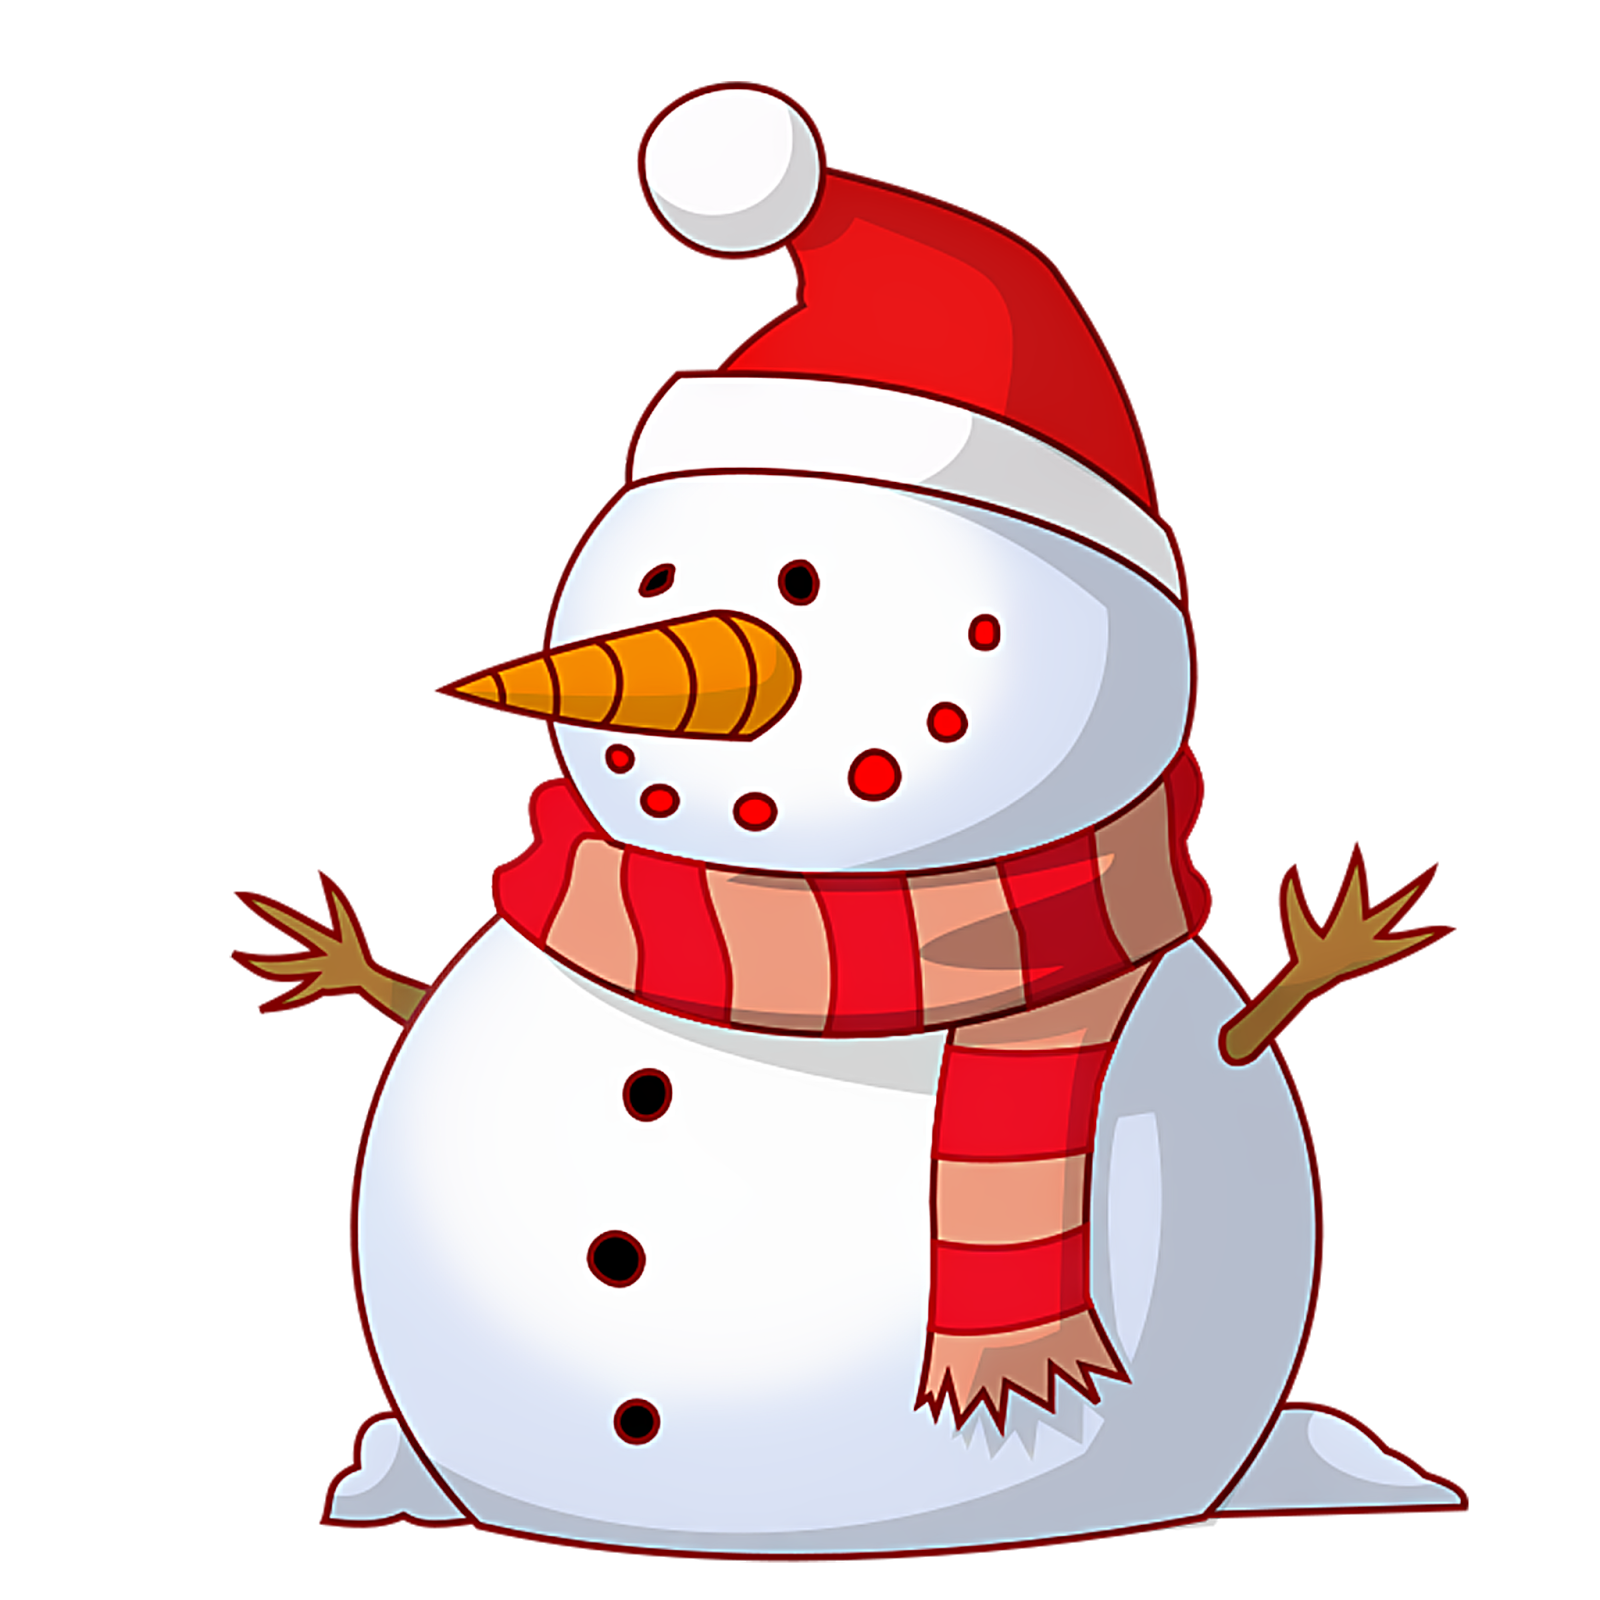 snowman clip art free clipart panda free clipart images rh clipartpanda com creative commons clip art education creative commons clip art chorus